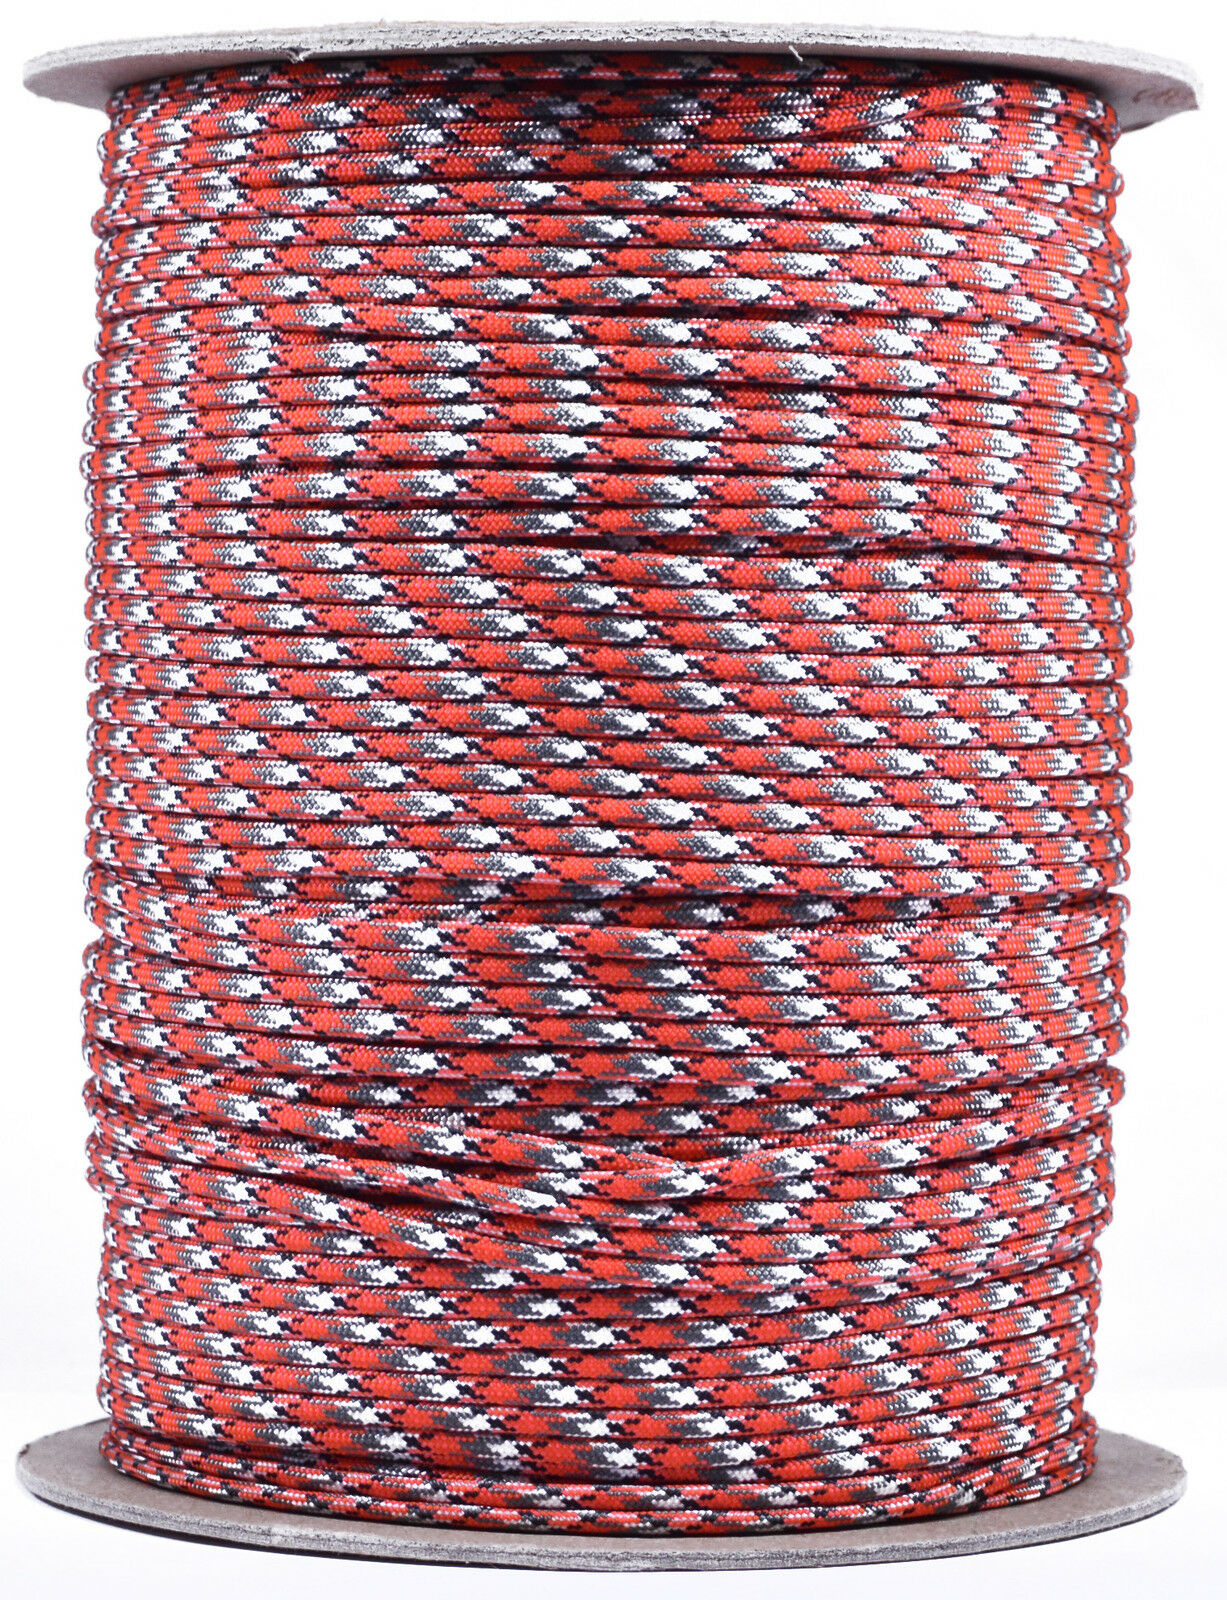 Corrosion - 550 Paracord Rope 7 strand Parachute Cord - 1000 Foot Spool